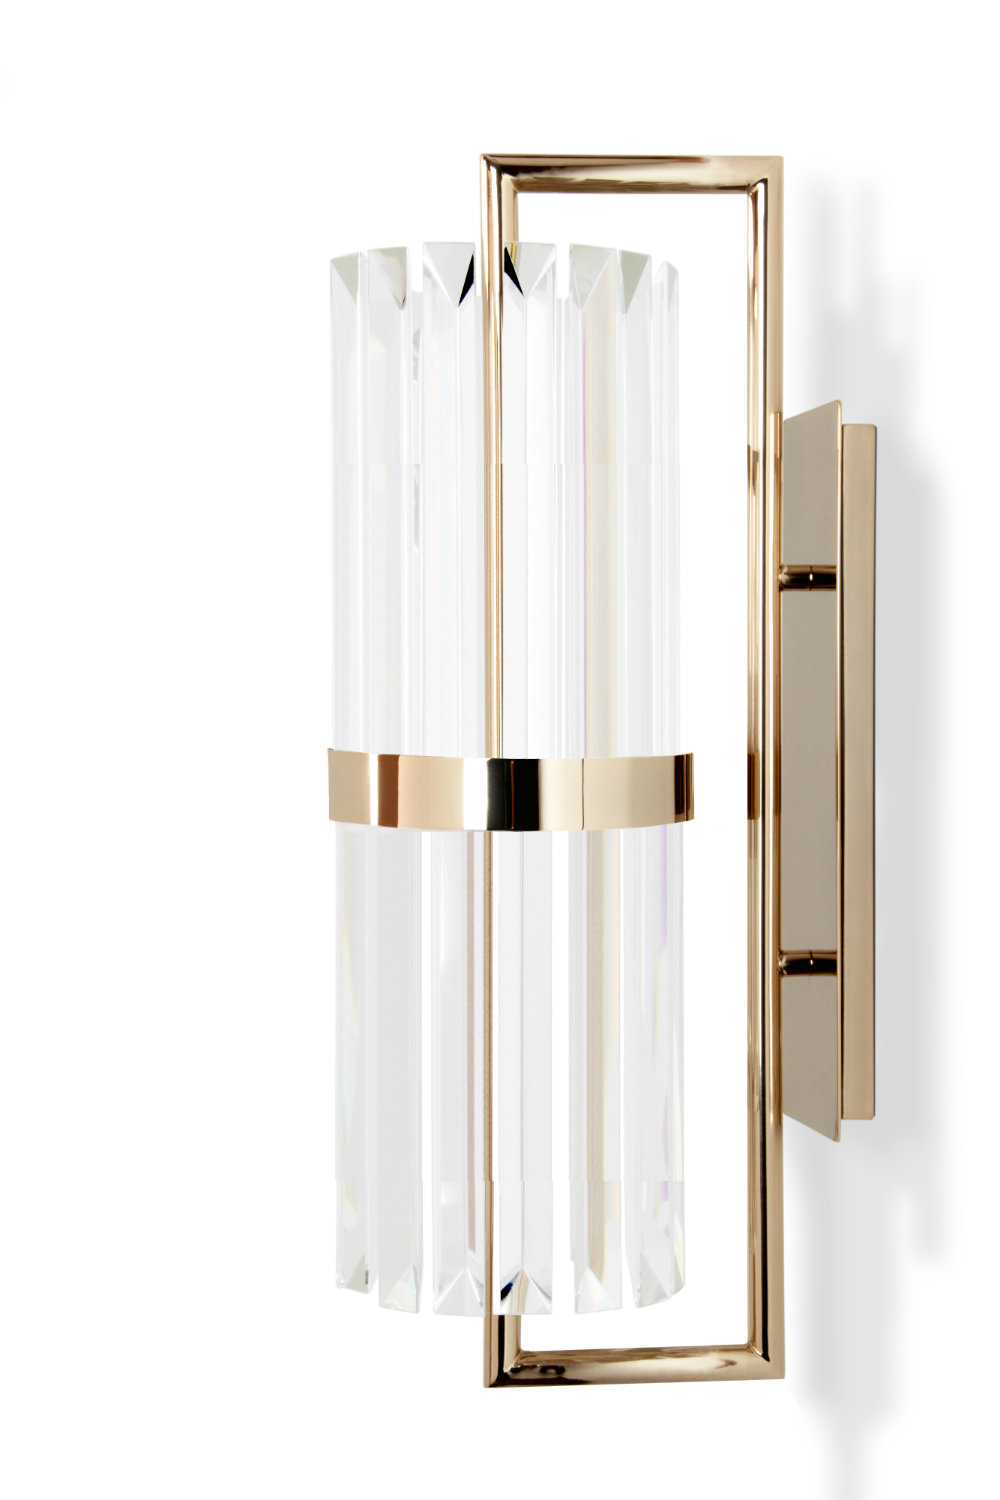 4 New Luxury Lighting Designs You Need To See 04 new luxury lighting designs 4 New Luxury Lighting Designs You Need To See 4 New Luxury Lighting Designs You Need To See 04